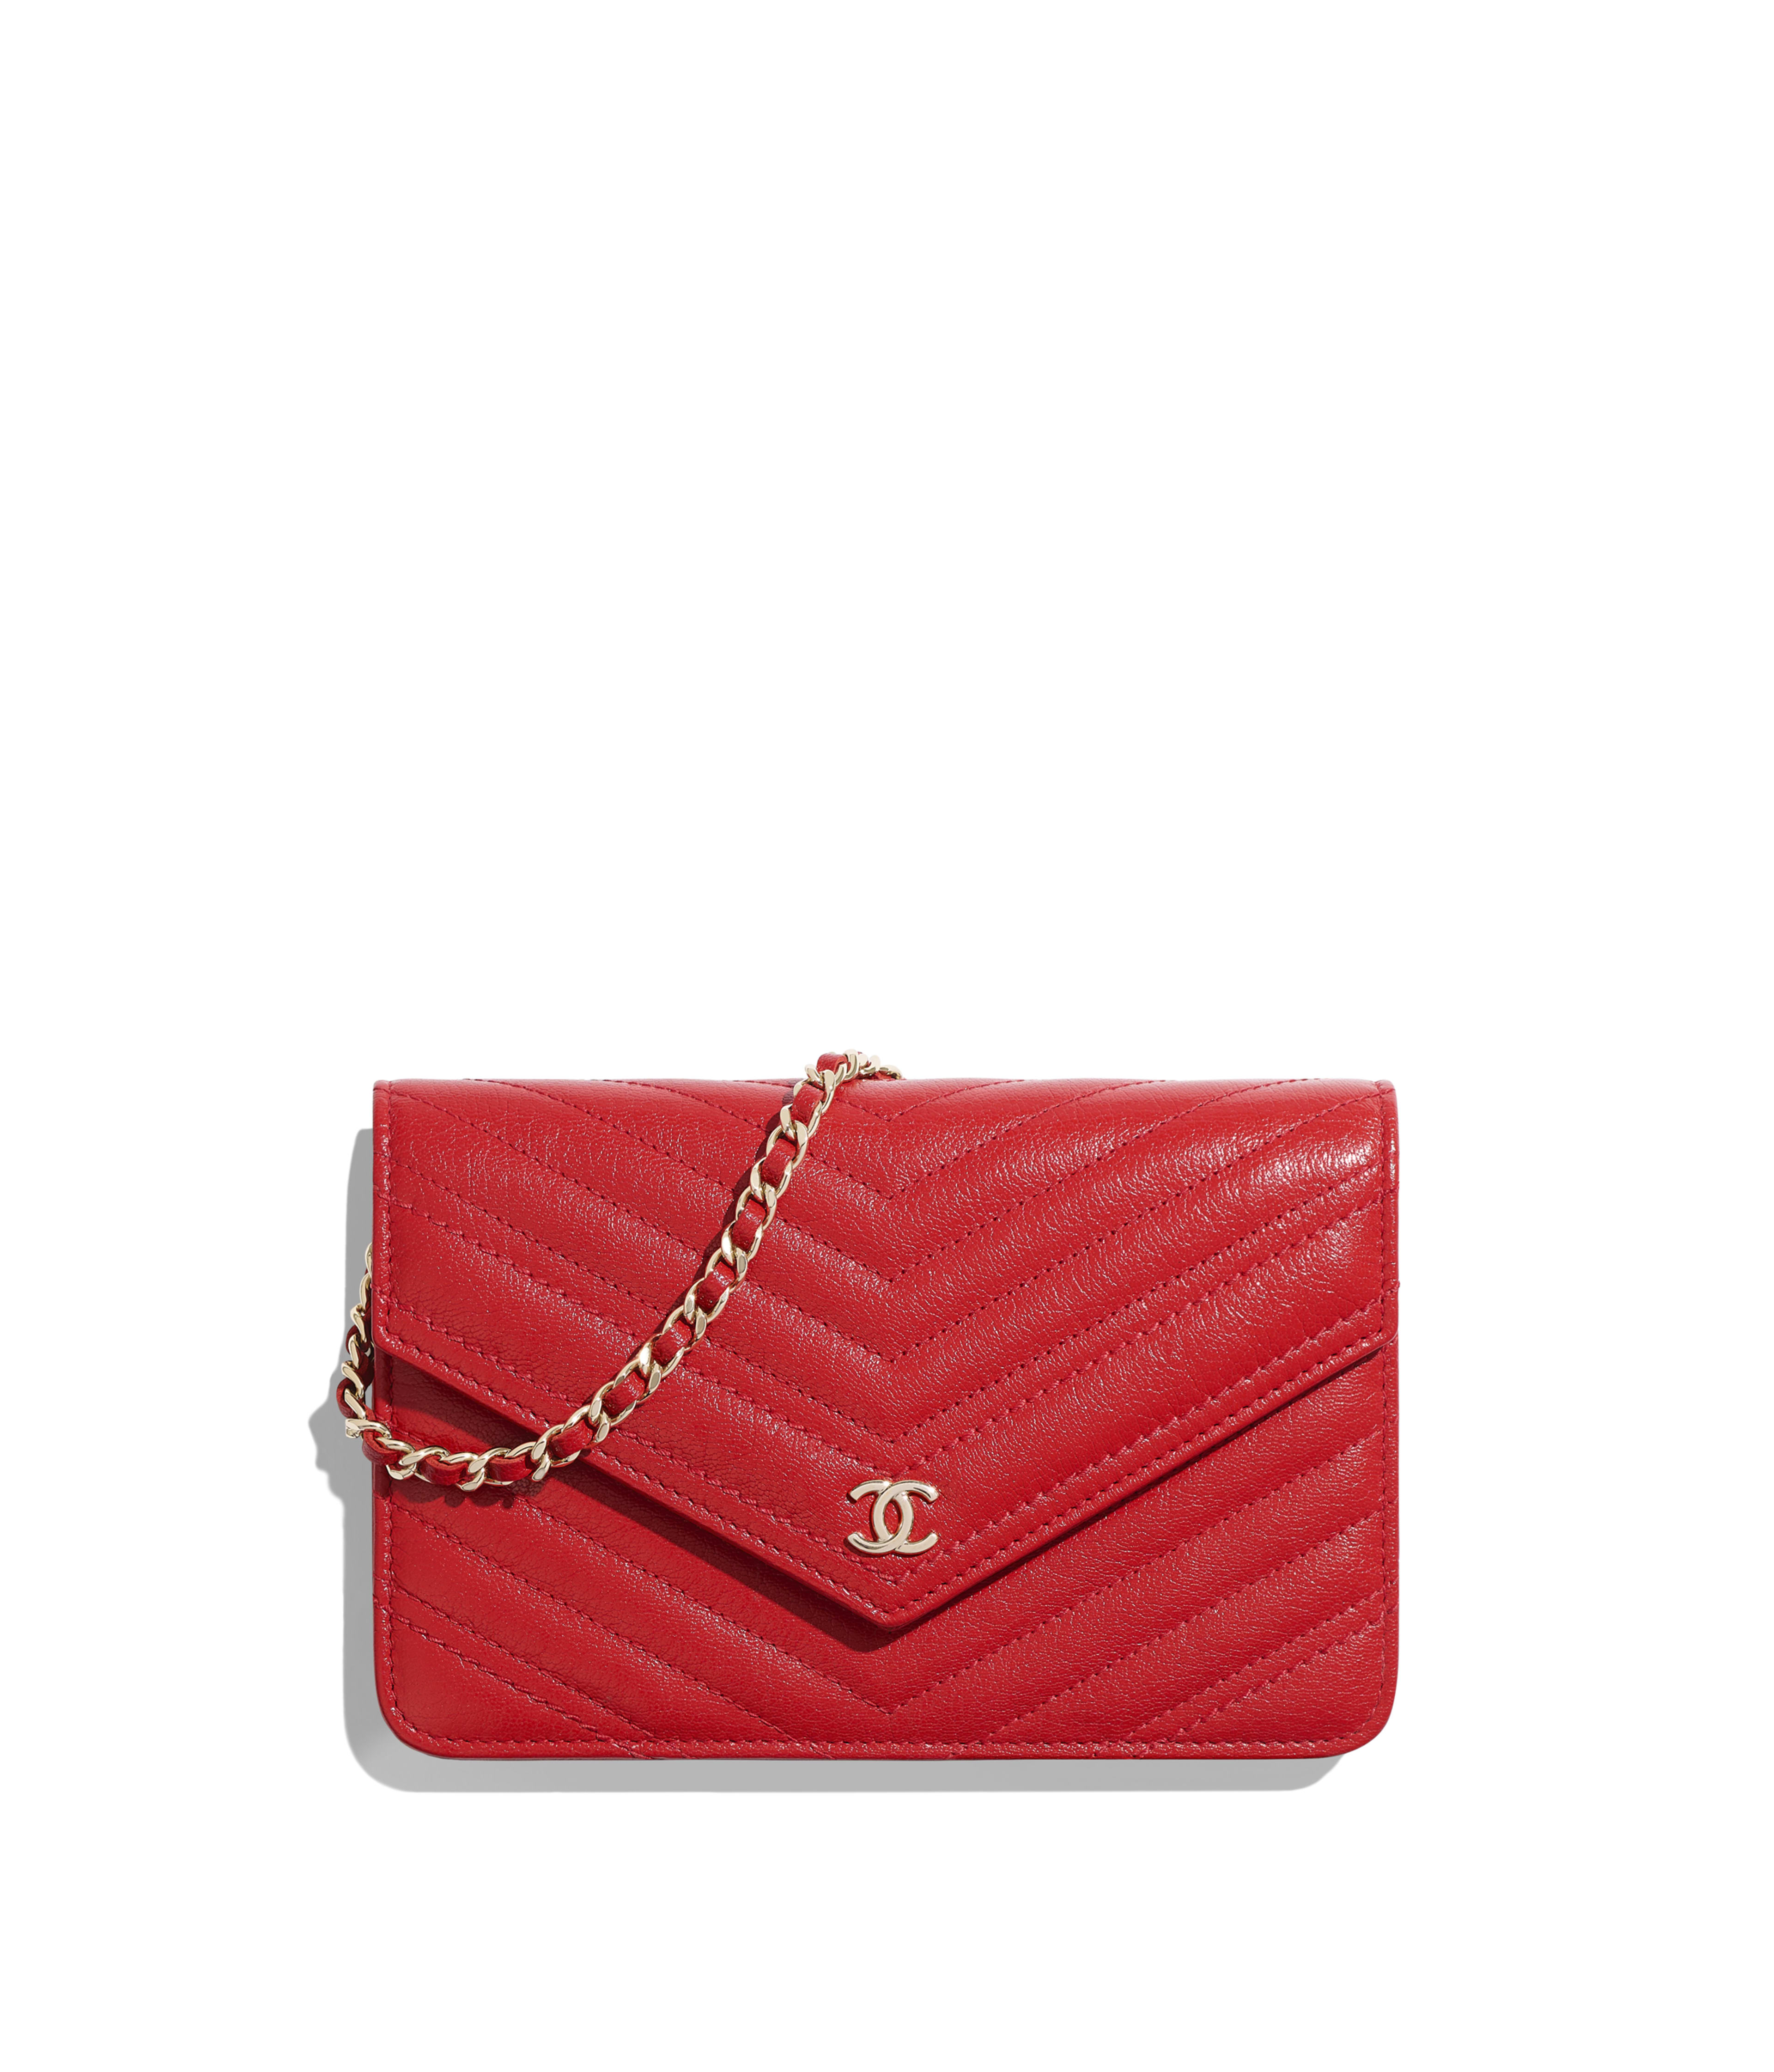 b906d0ca445fef Wallet on Chain Goatskin & Gold-Tone Metal, Red Ref. A84350B00047N0413